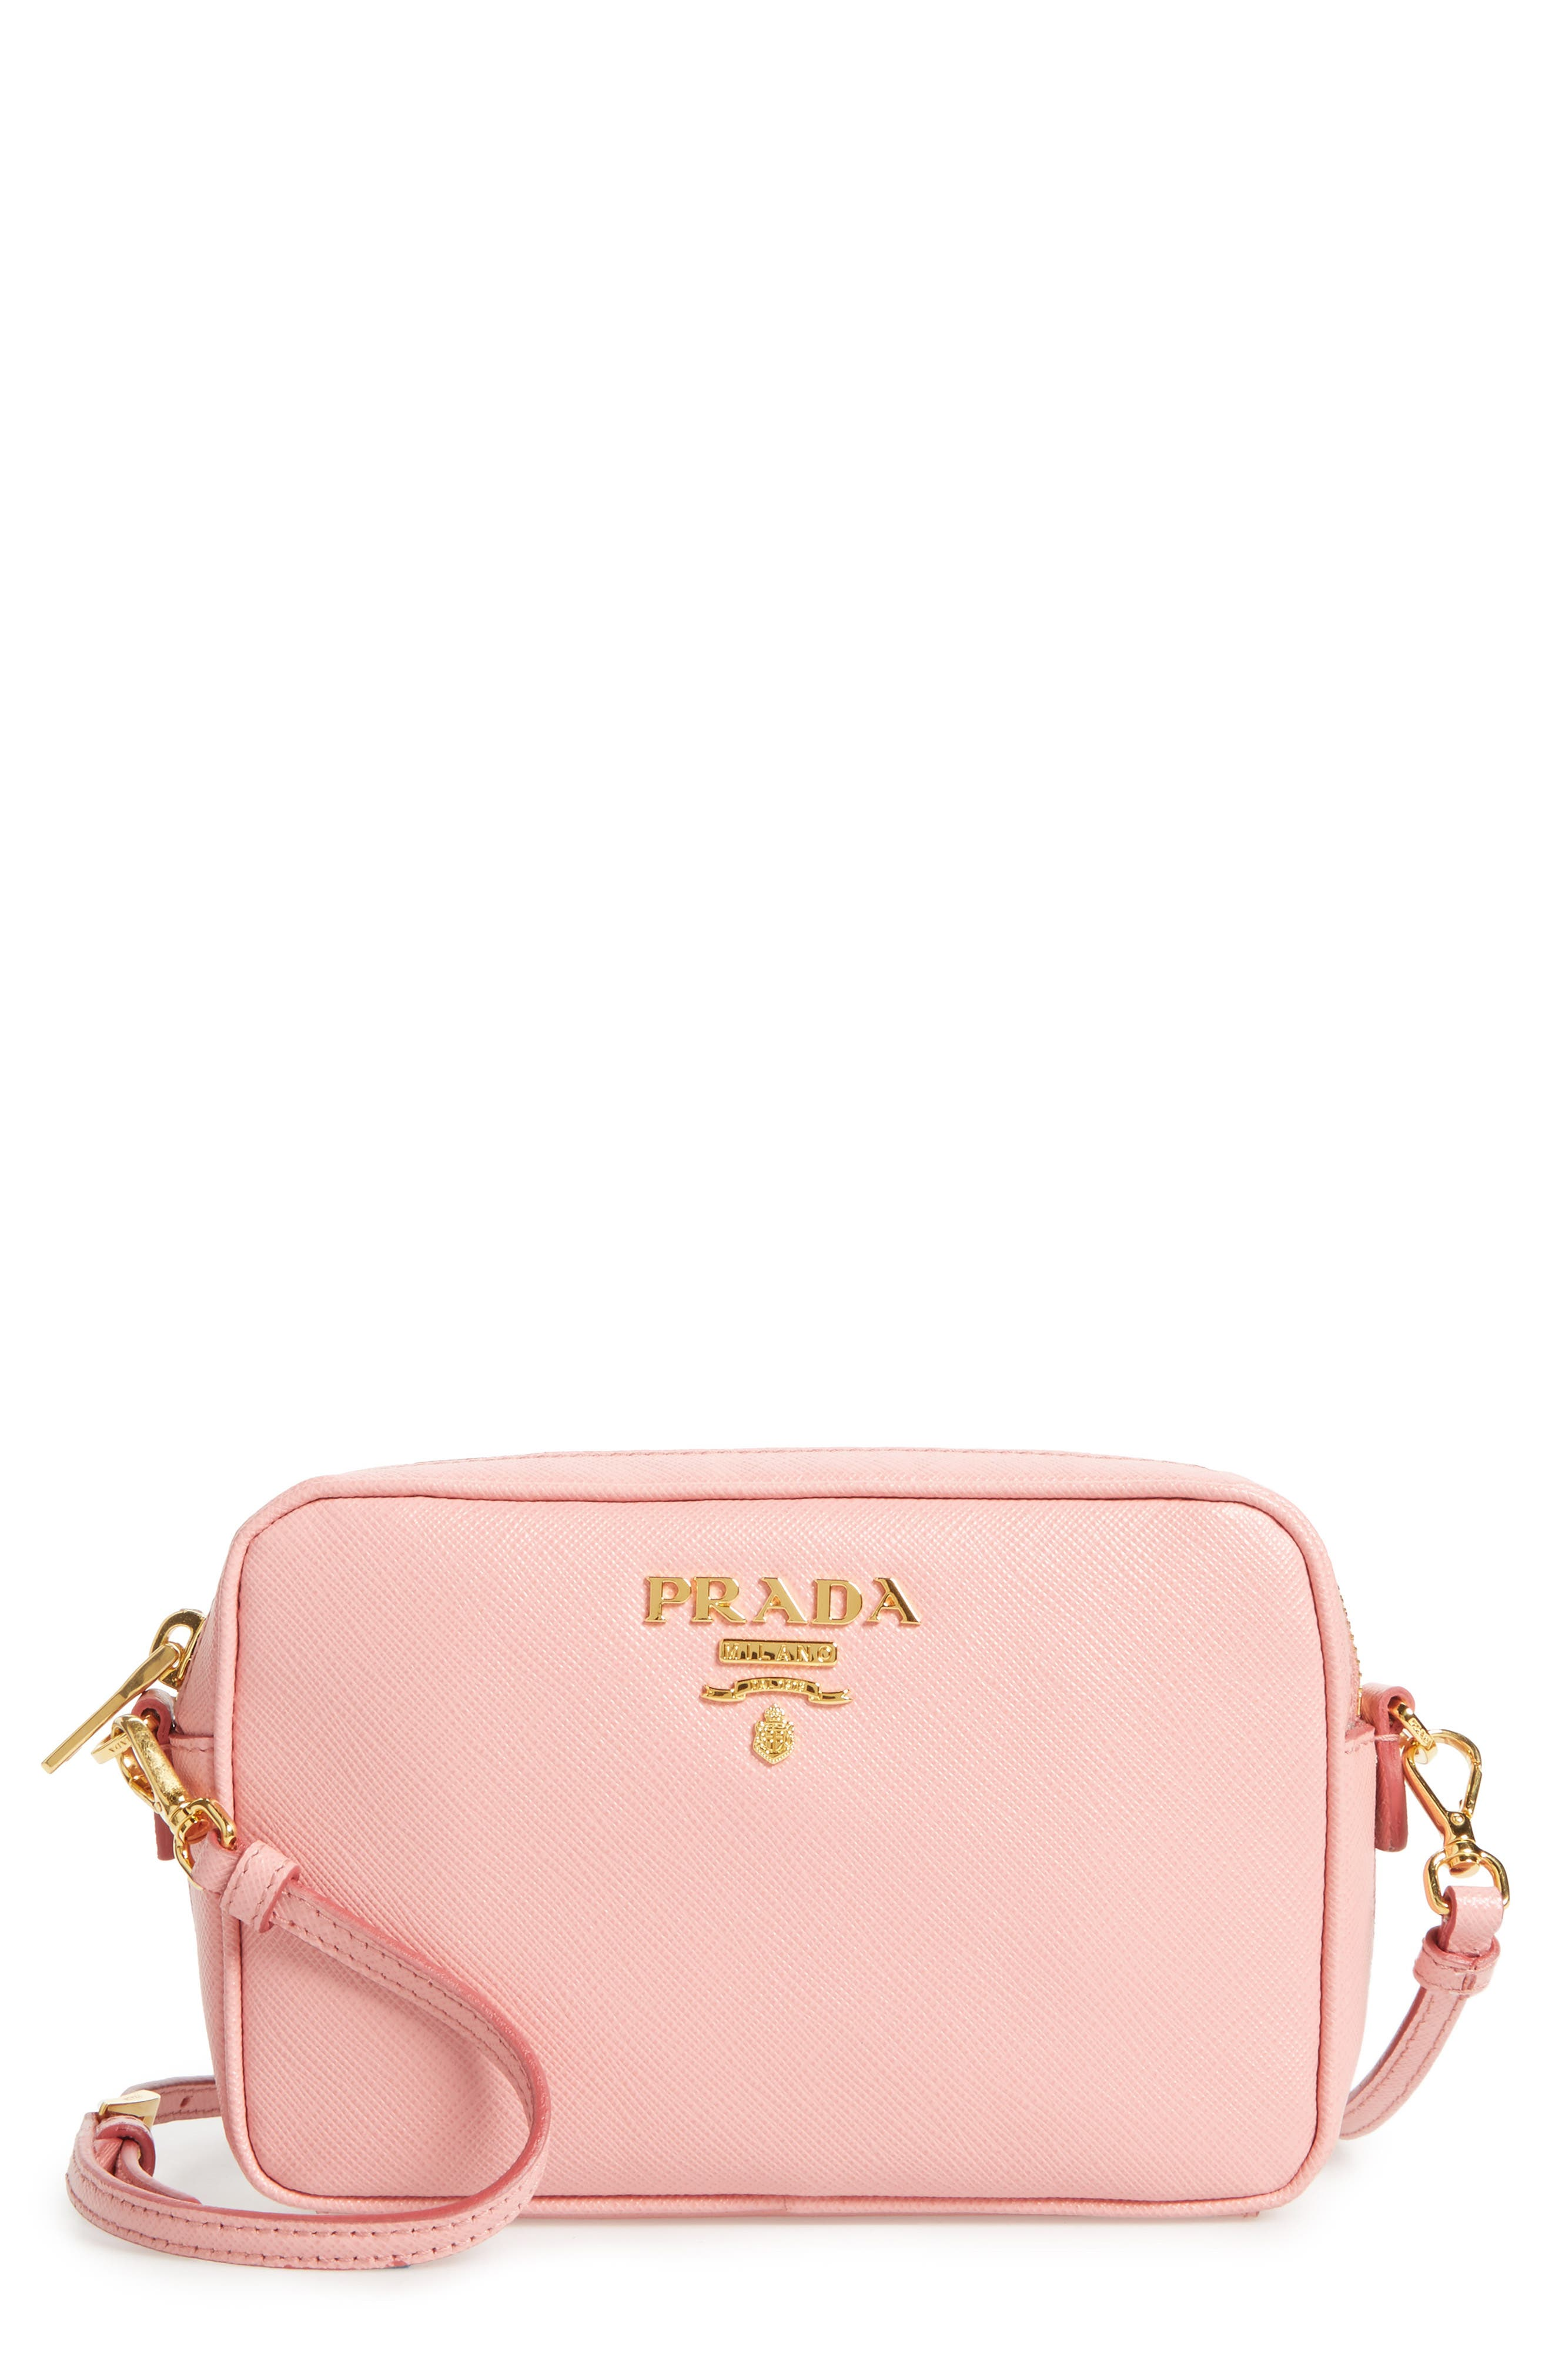 Prada Small Saffiano Leather Camera Bag